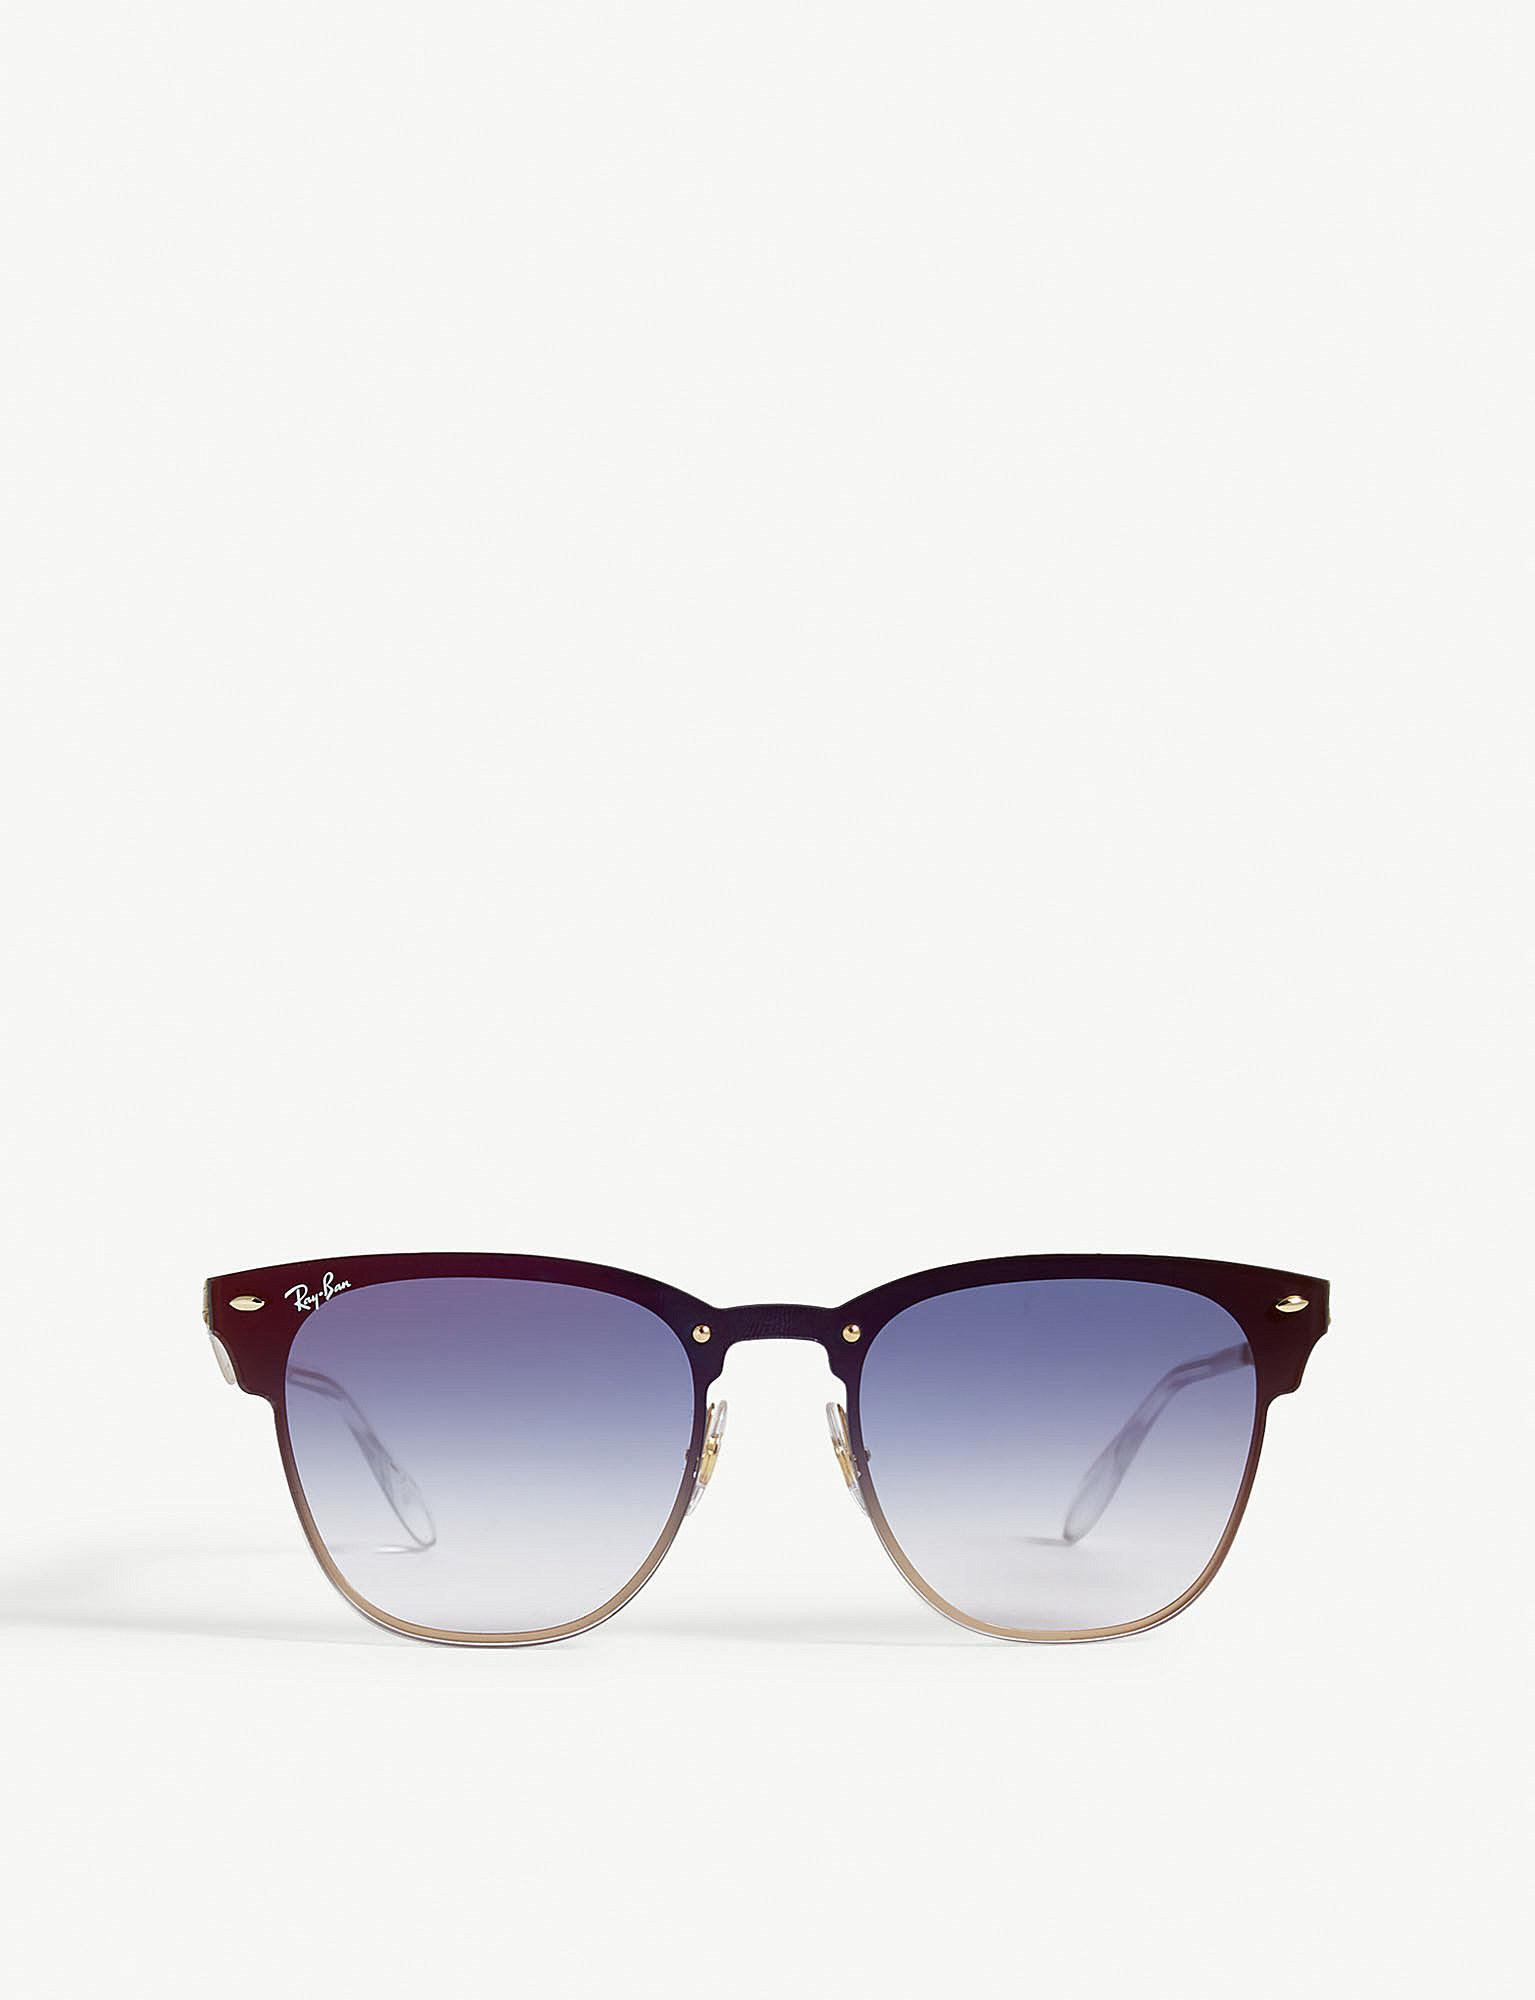 Lyst - Ray-Ban Mens Gold Classic Blaze Clubmaster Square-frame ...